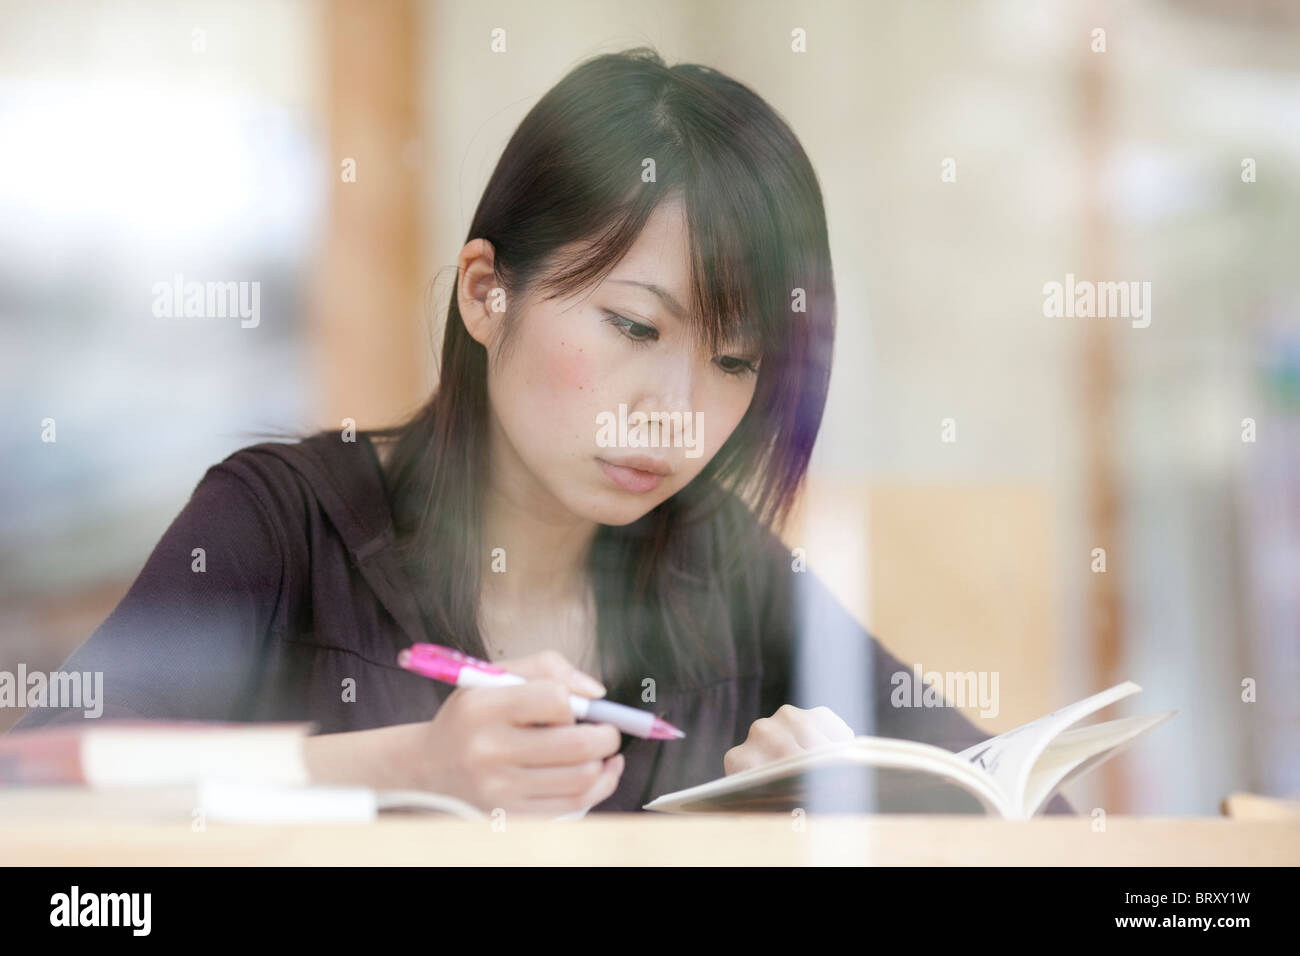 Young woman studying, Japan Stock Photo